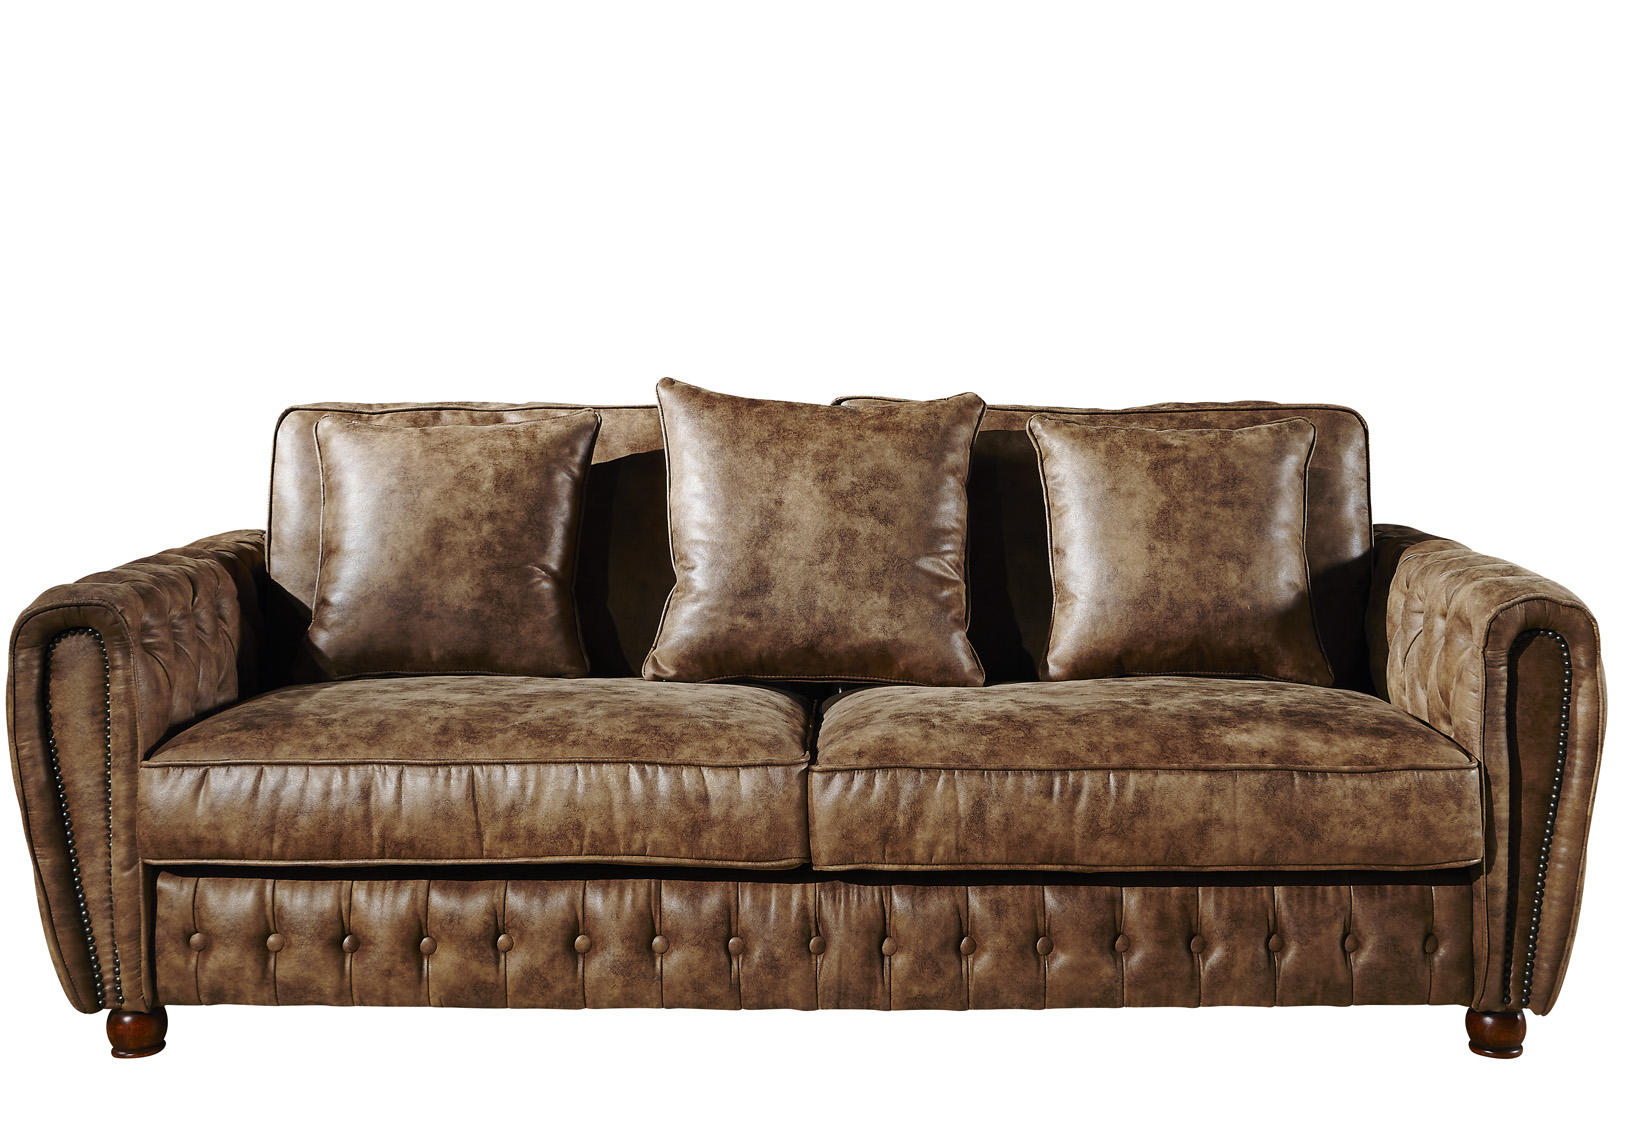 vintage fabric chesterfield sofa with movable cushions and deep buttons